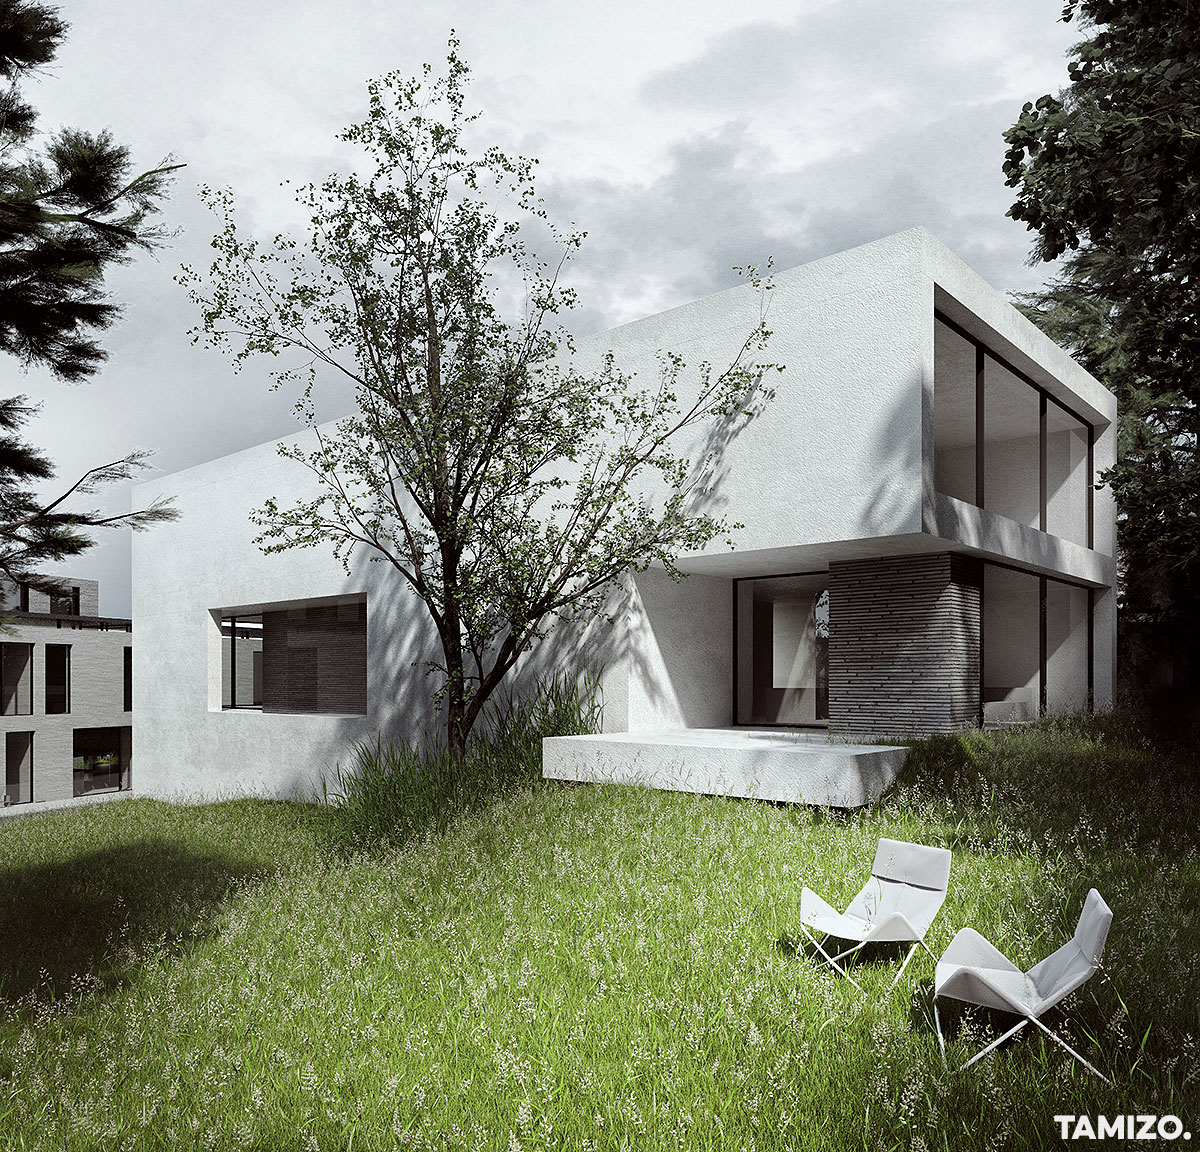 A061_tamizo_architects_competition_tbilisi_georgia_multifamily_houseing_realestate_05